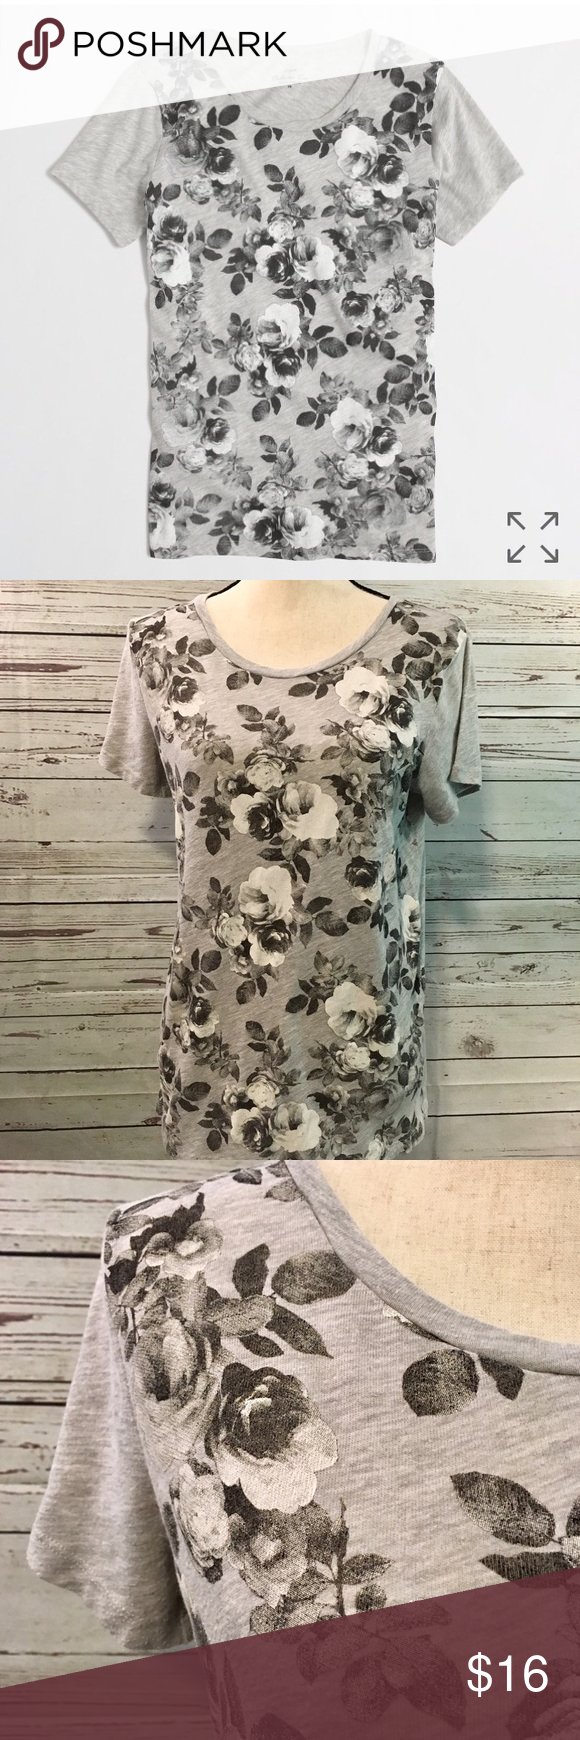 """16fb780f33a J Crew Collectors Tee Cute photographic floral collectors tee in airy  cotton. Like new! 20"""" pit to pit 26"""" length Perfect condition and so cute  for spring!"""